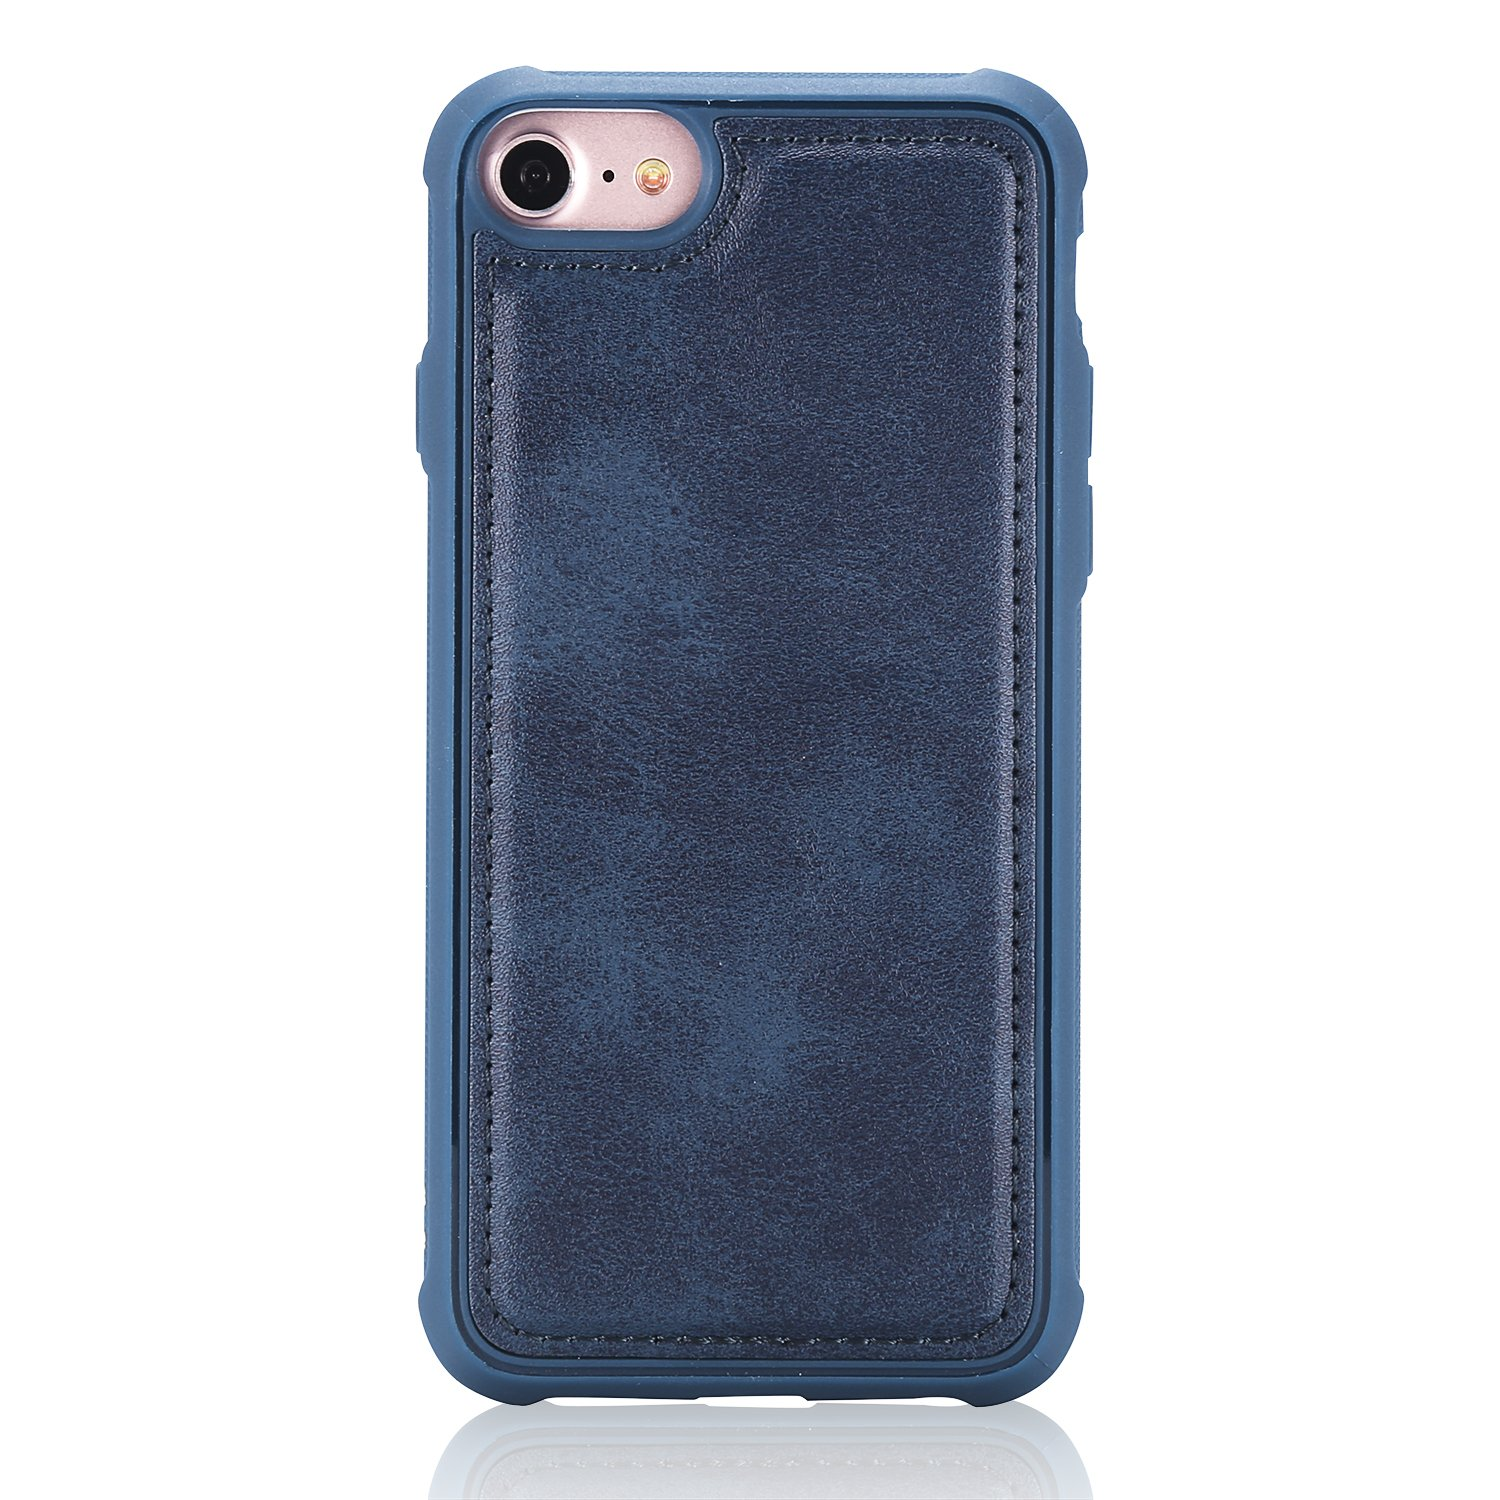 DAMONDY iPhone 8 Case iPhone 7 Case, Detachable 2 in 1 Cover Stand Wallet Purse Card Slot ID Holders Design Flip Cover Pocket Purse Leather Magnetic Protective for iPhone 7/iPhone 8-blue by DAMONDY (Image #5)